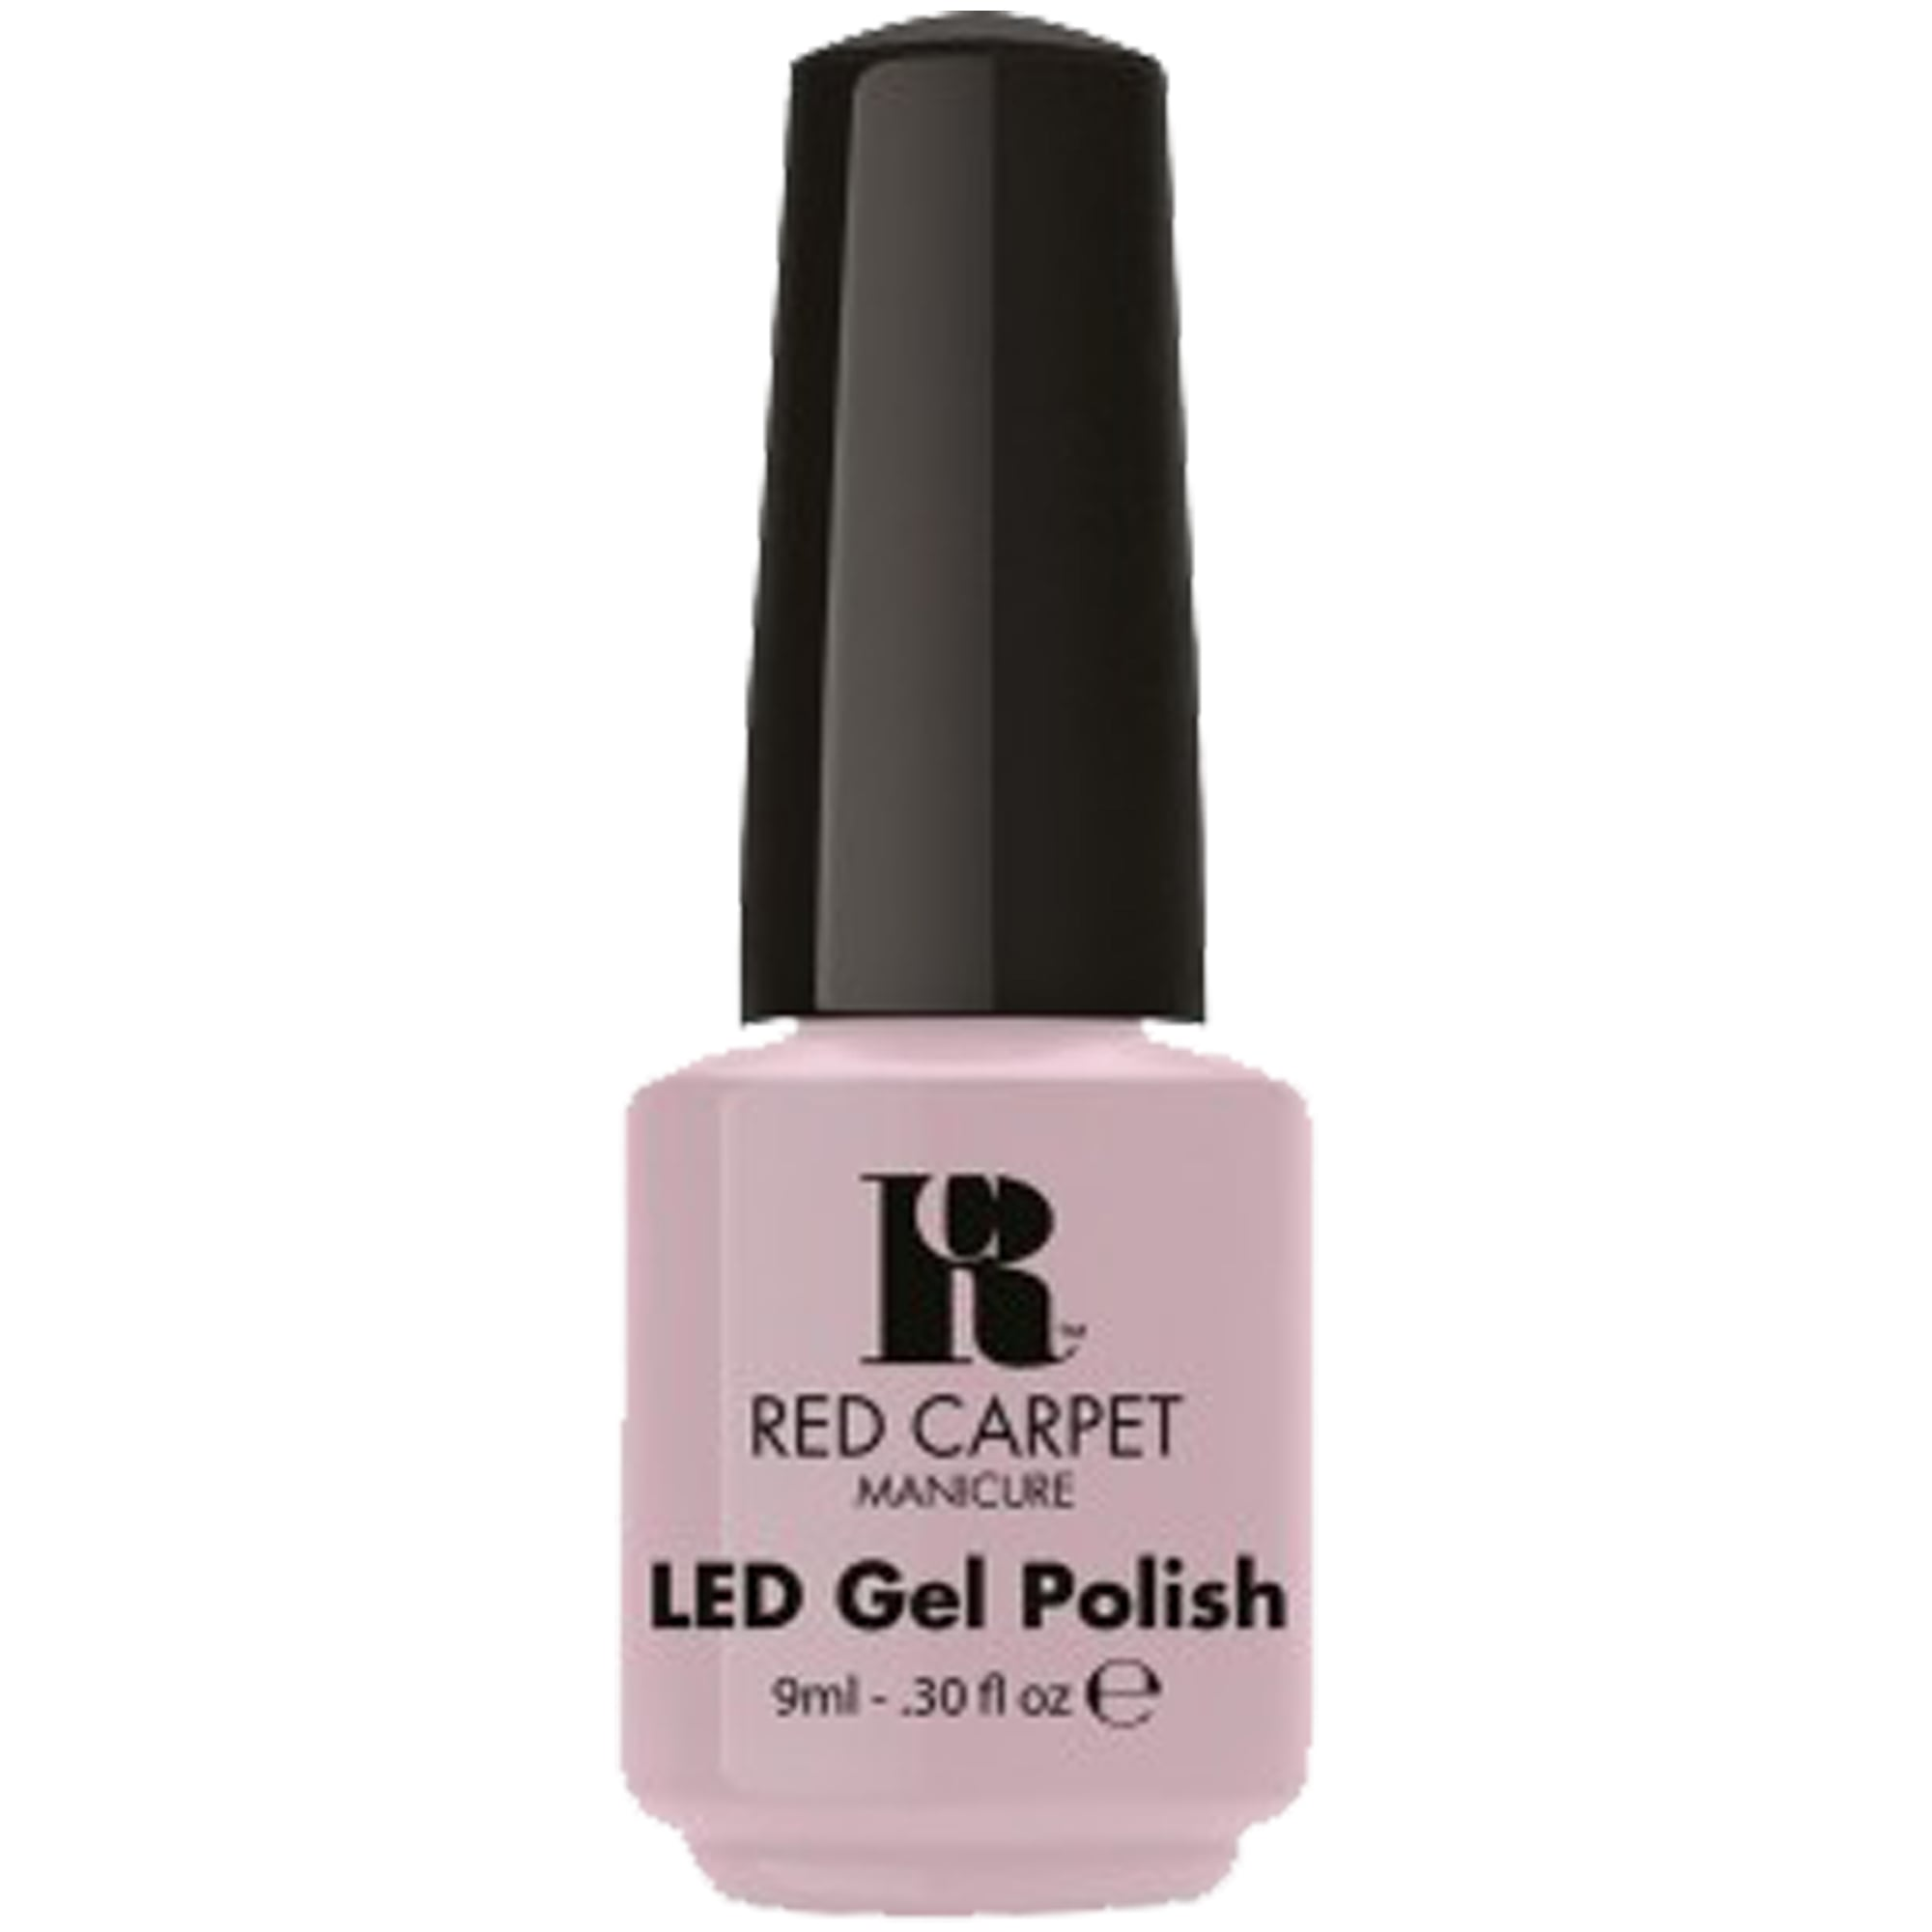 Red Carpet LED Gel Nail Polish Nervous With Anticipation